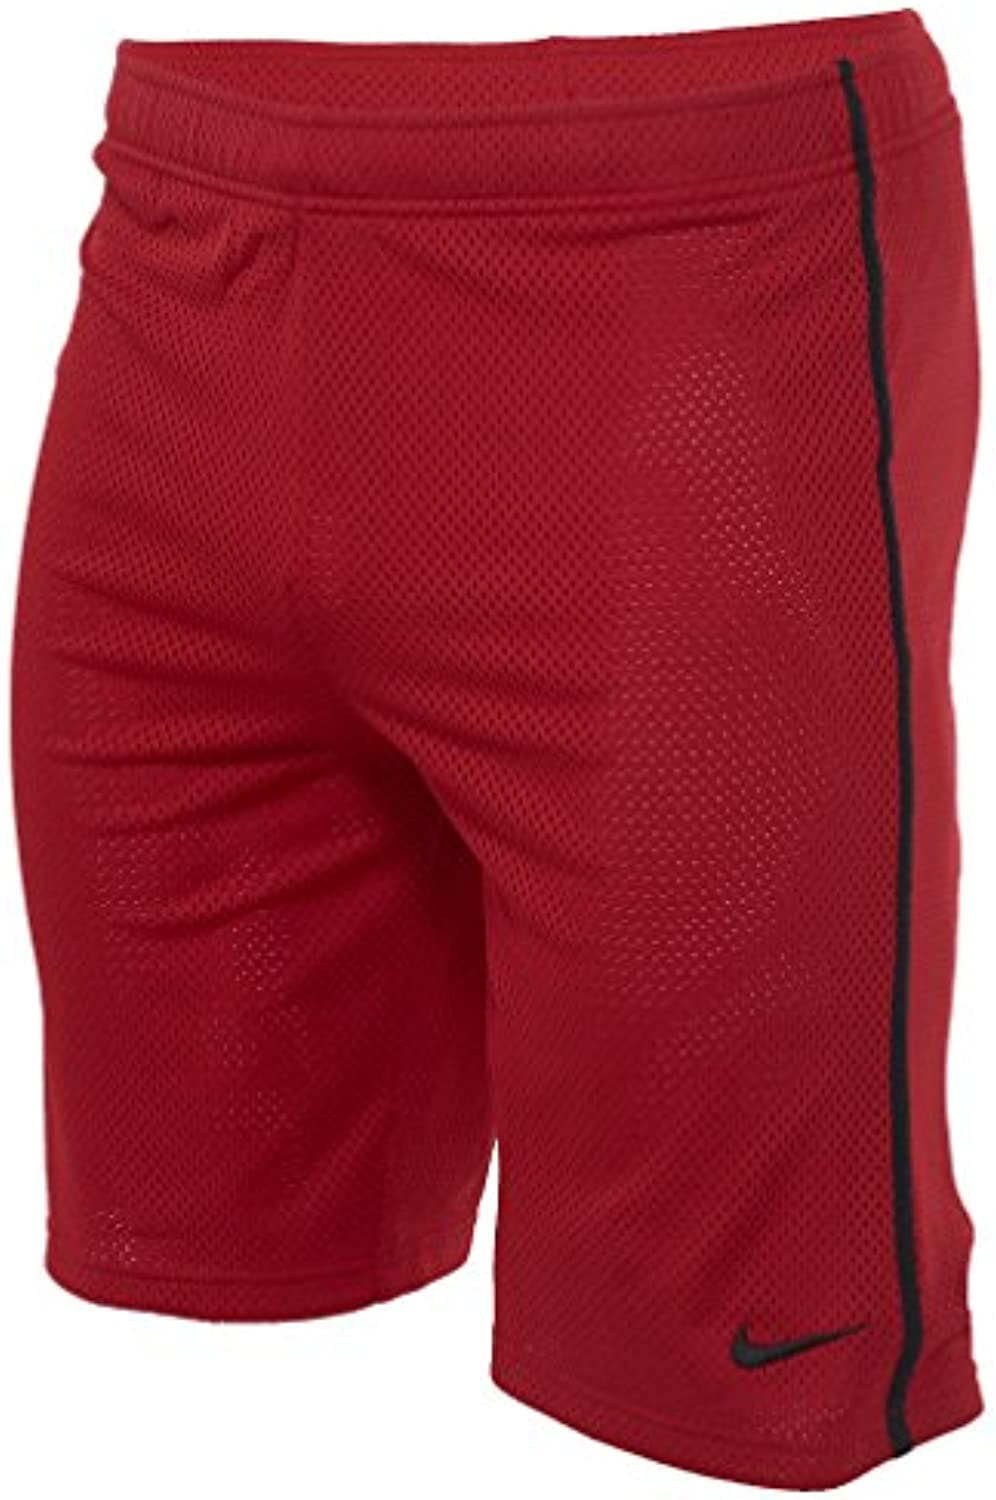 Nike Monster Mesh Athletic Shorts Large Red by Nike